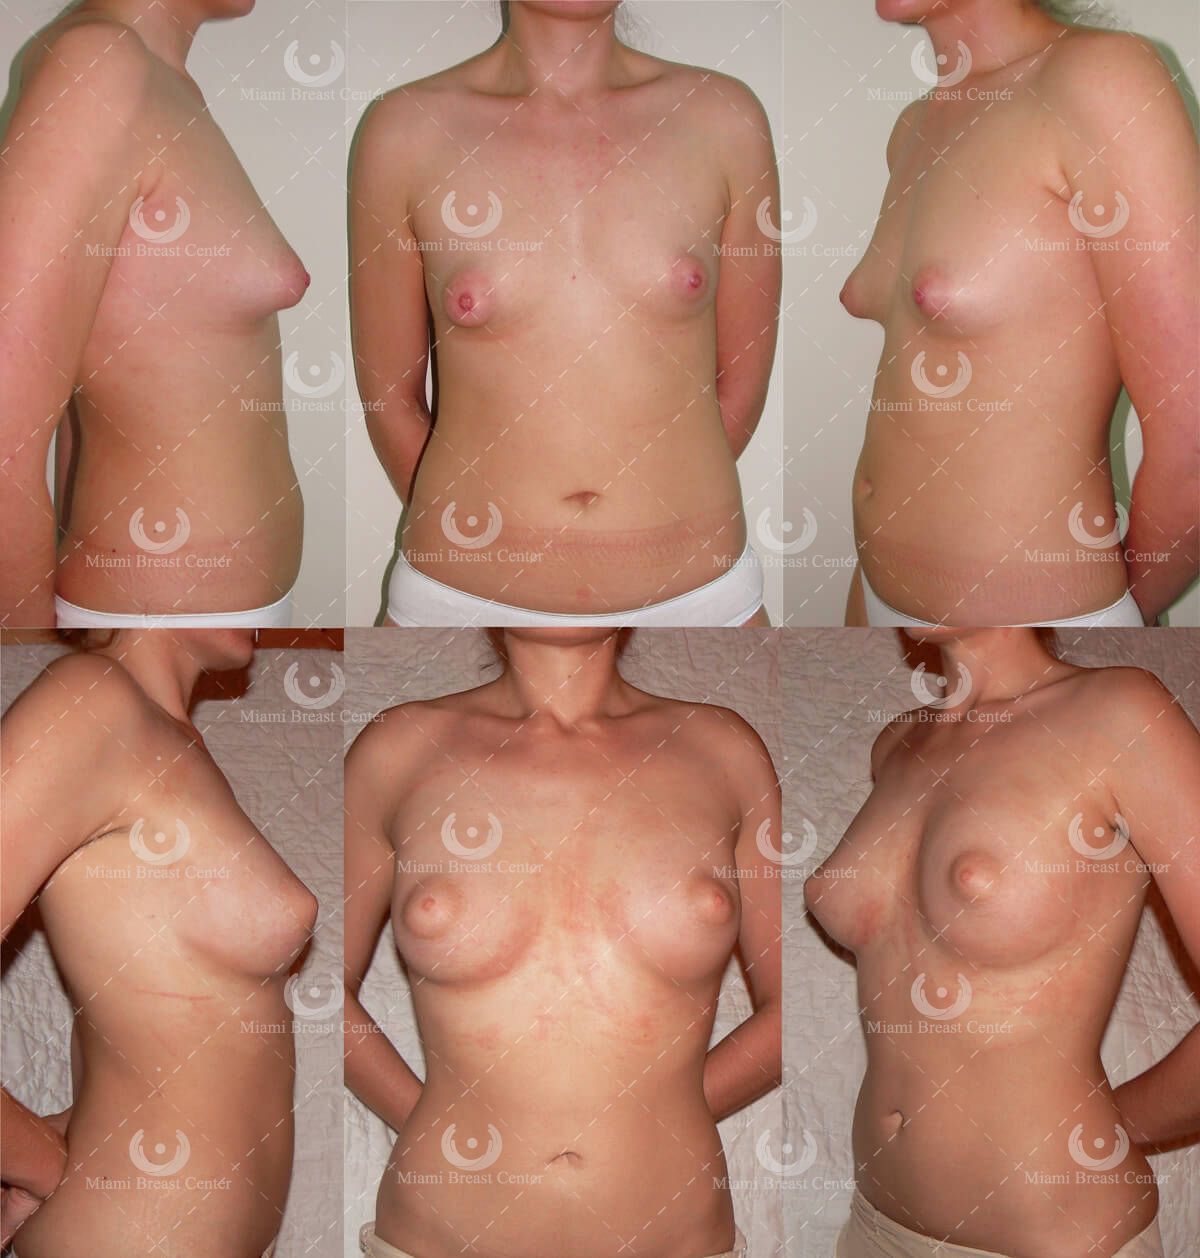 tubular breast correction before after